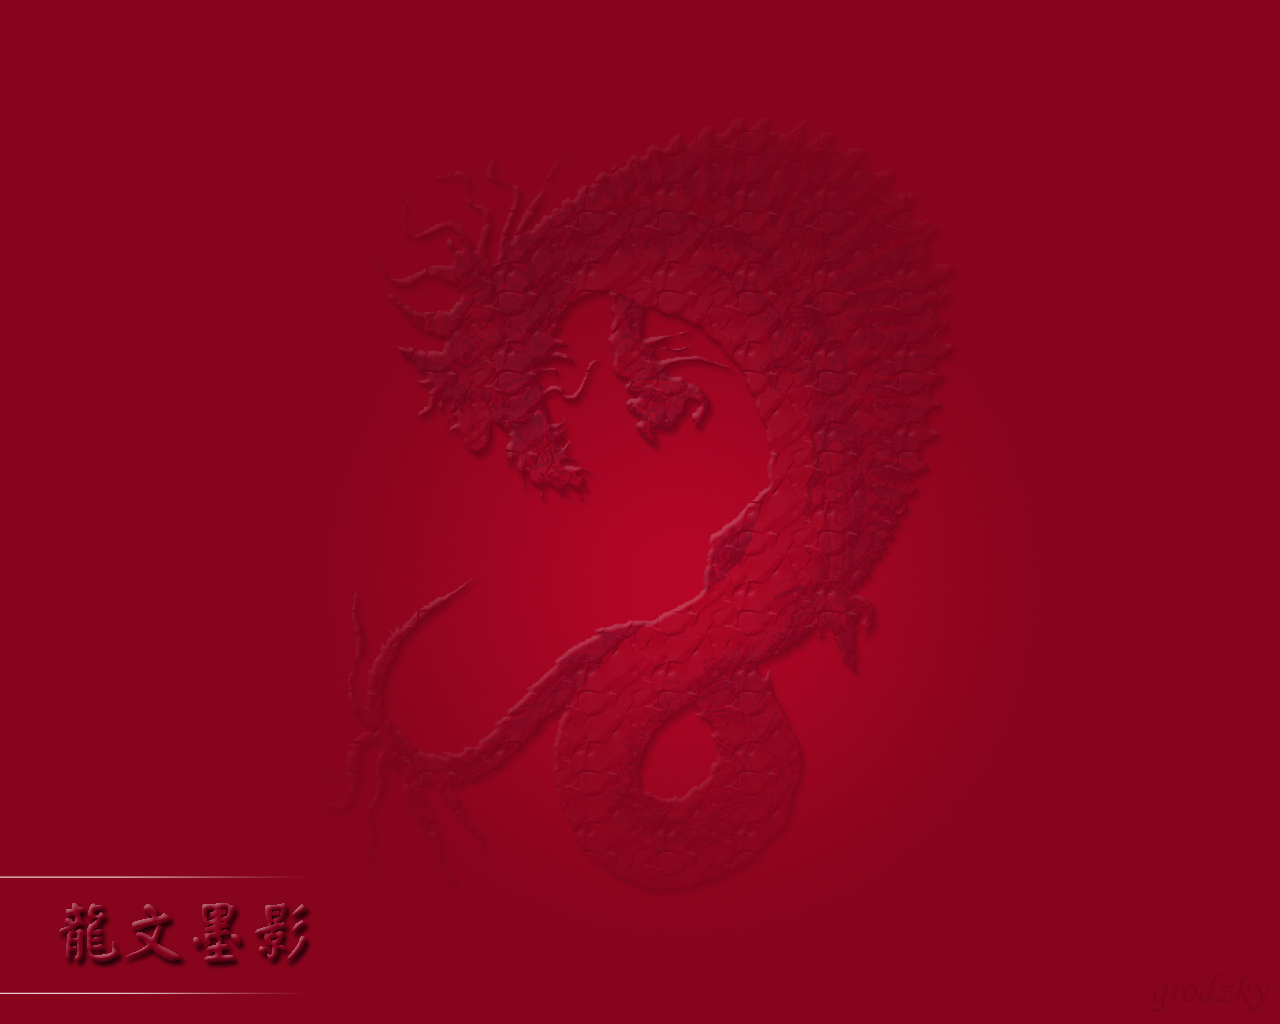 red chinese dragon by grodzky 1280x1024